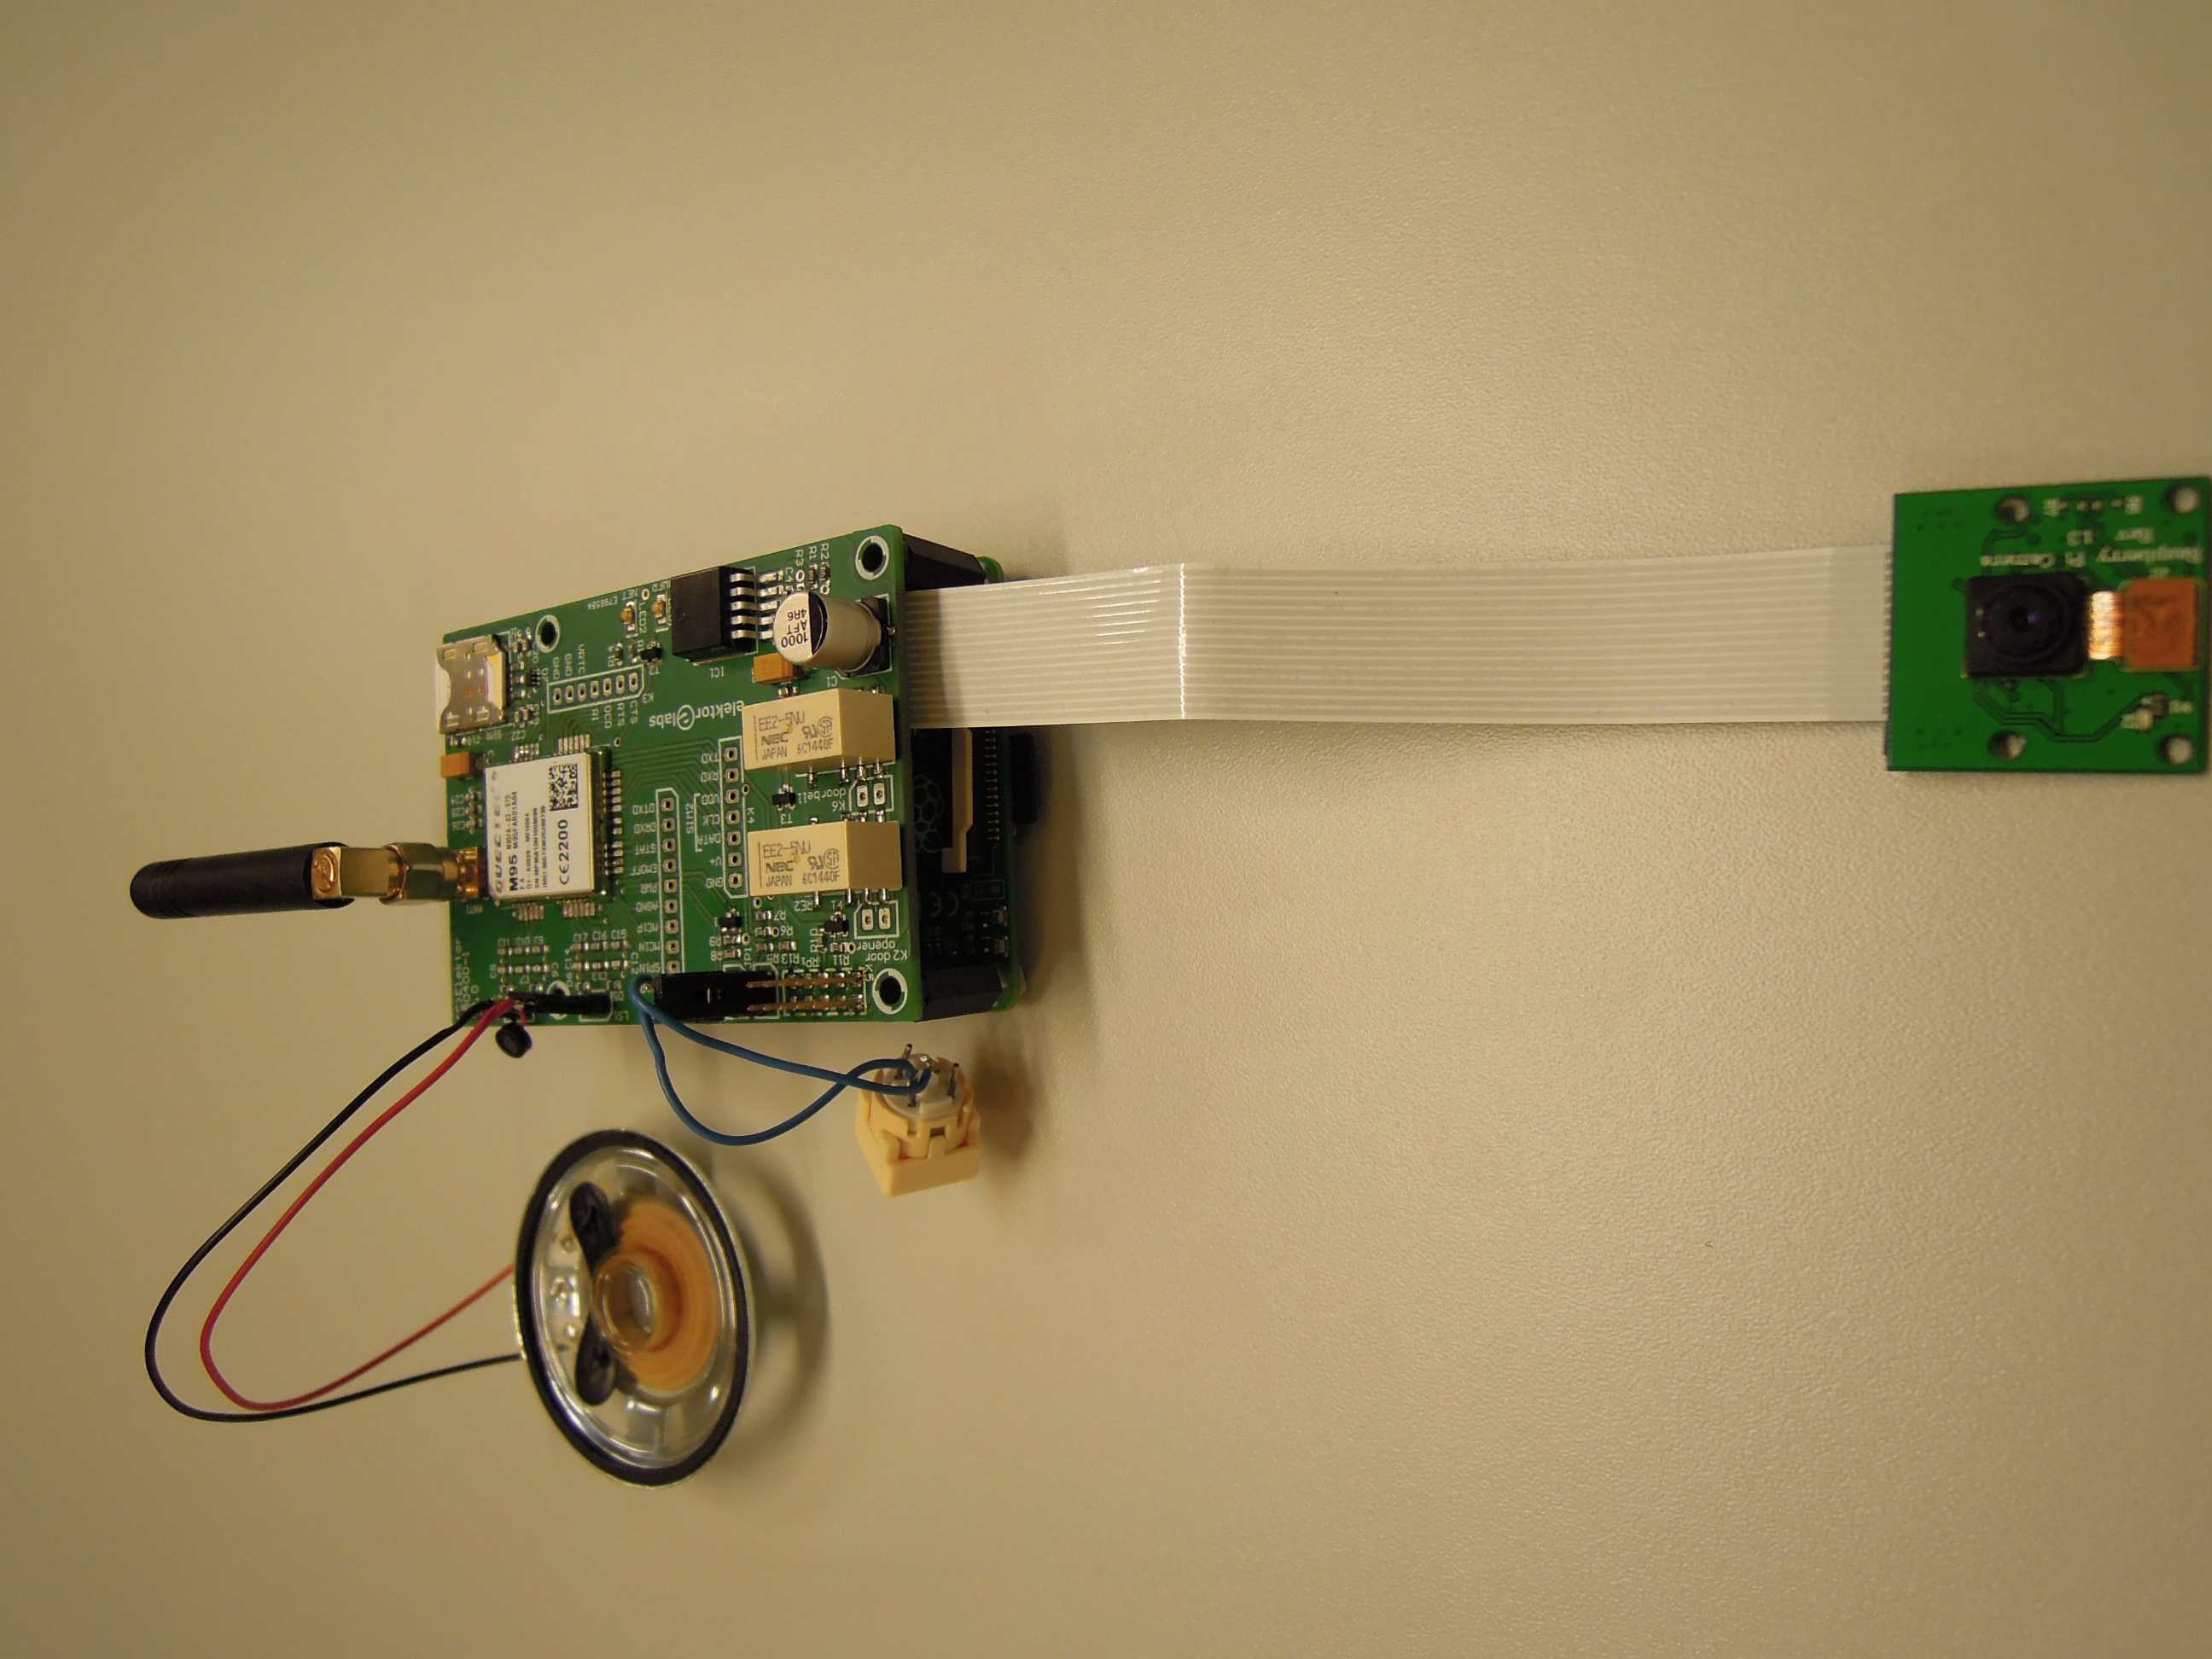 Raspberry Pi Doorbell Bodyguard 150400 Elektor Labs Circuit Board Pcb For The Main Project In Book 39robot Building Magazine